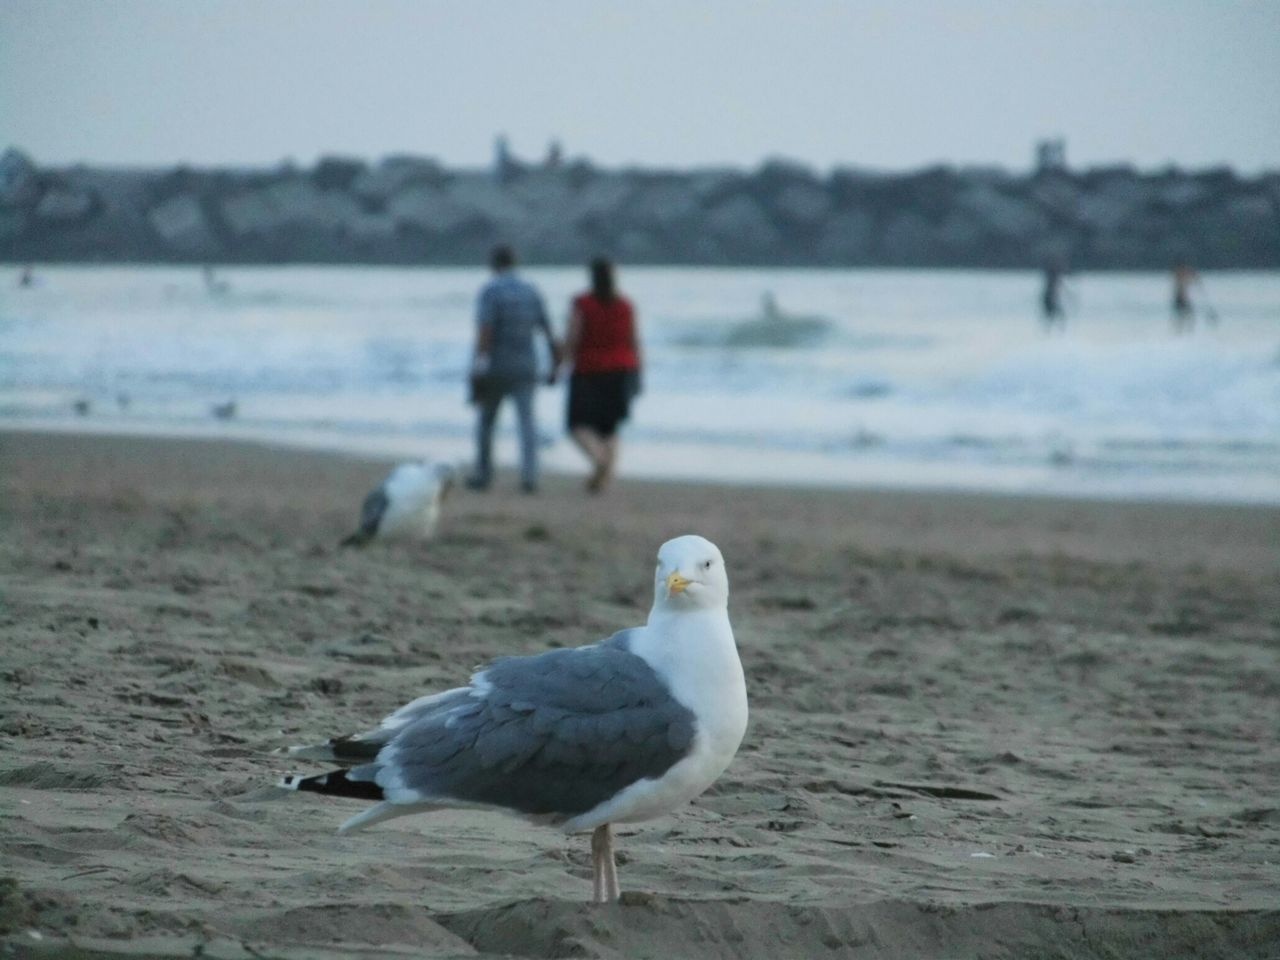 bird, beach, one animal, sea, animals in the wild, nature, focus on foreground, water, sand, seagull, real people, animal wildlife, outdoors, day, two people, beauty in nature, men, sea bird, perching, full length, sky, people